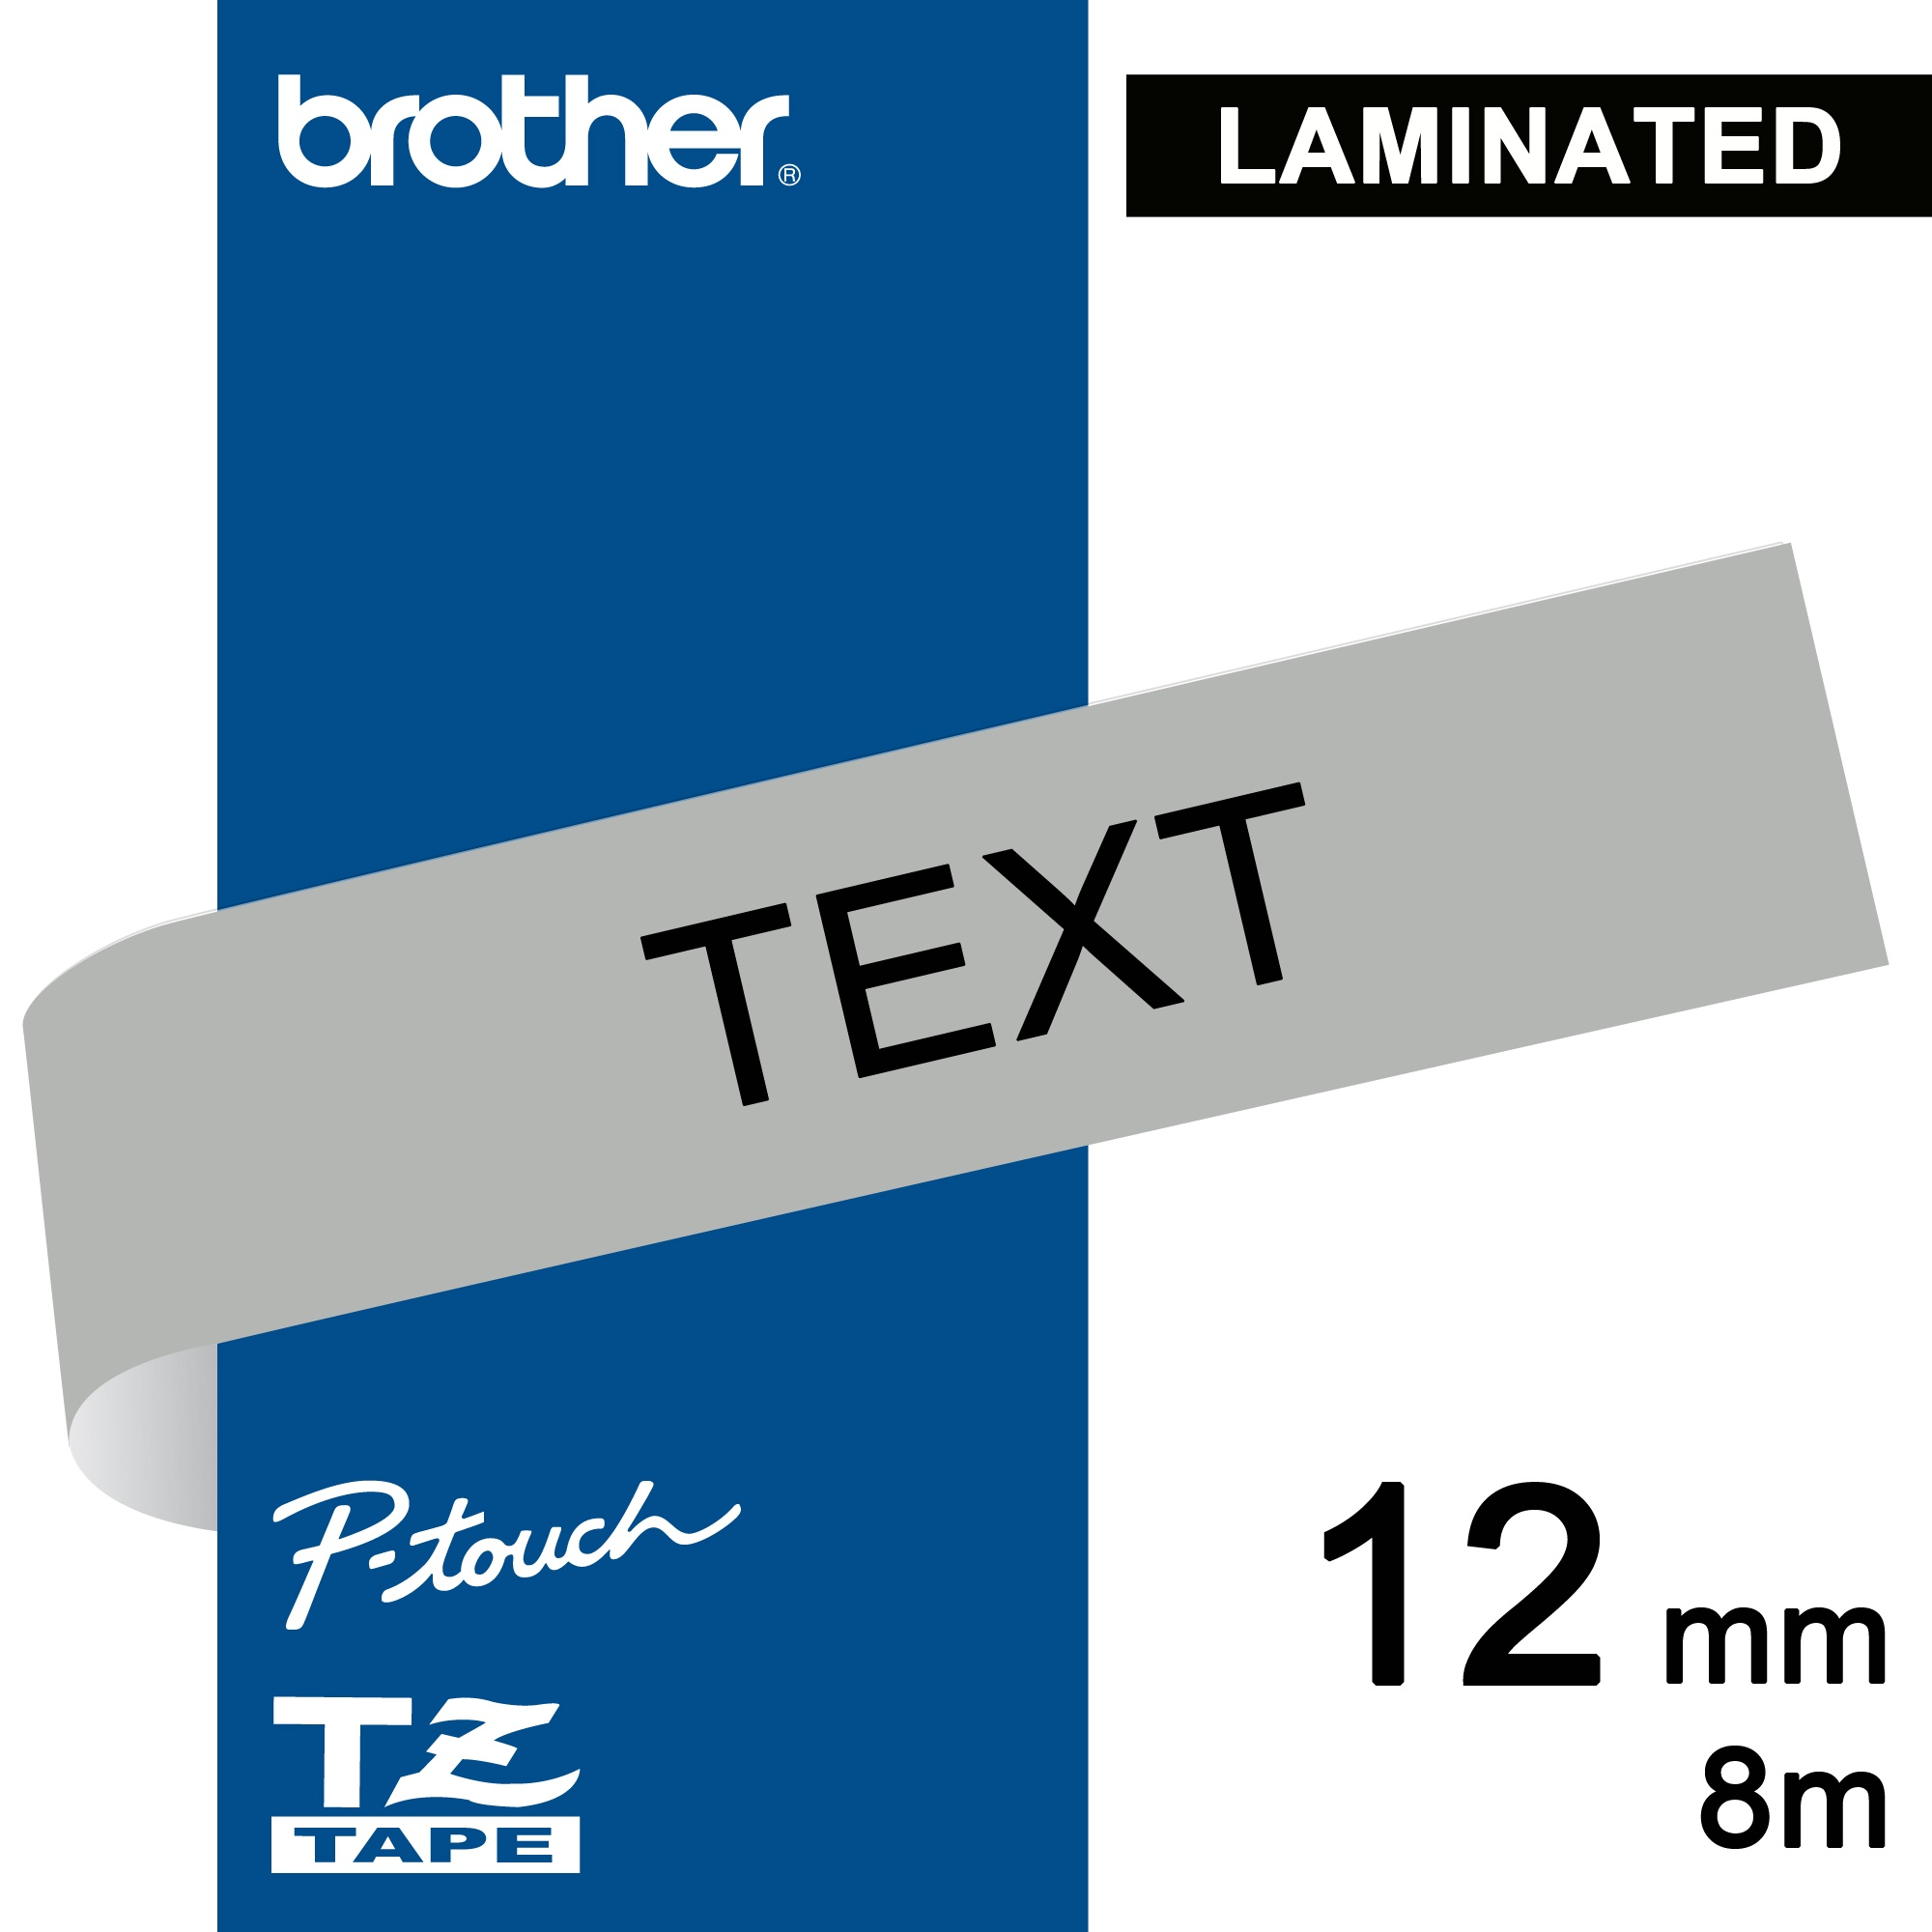 Laminated Tapes For Labelling Image